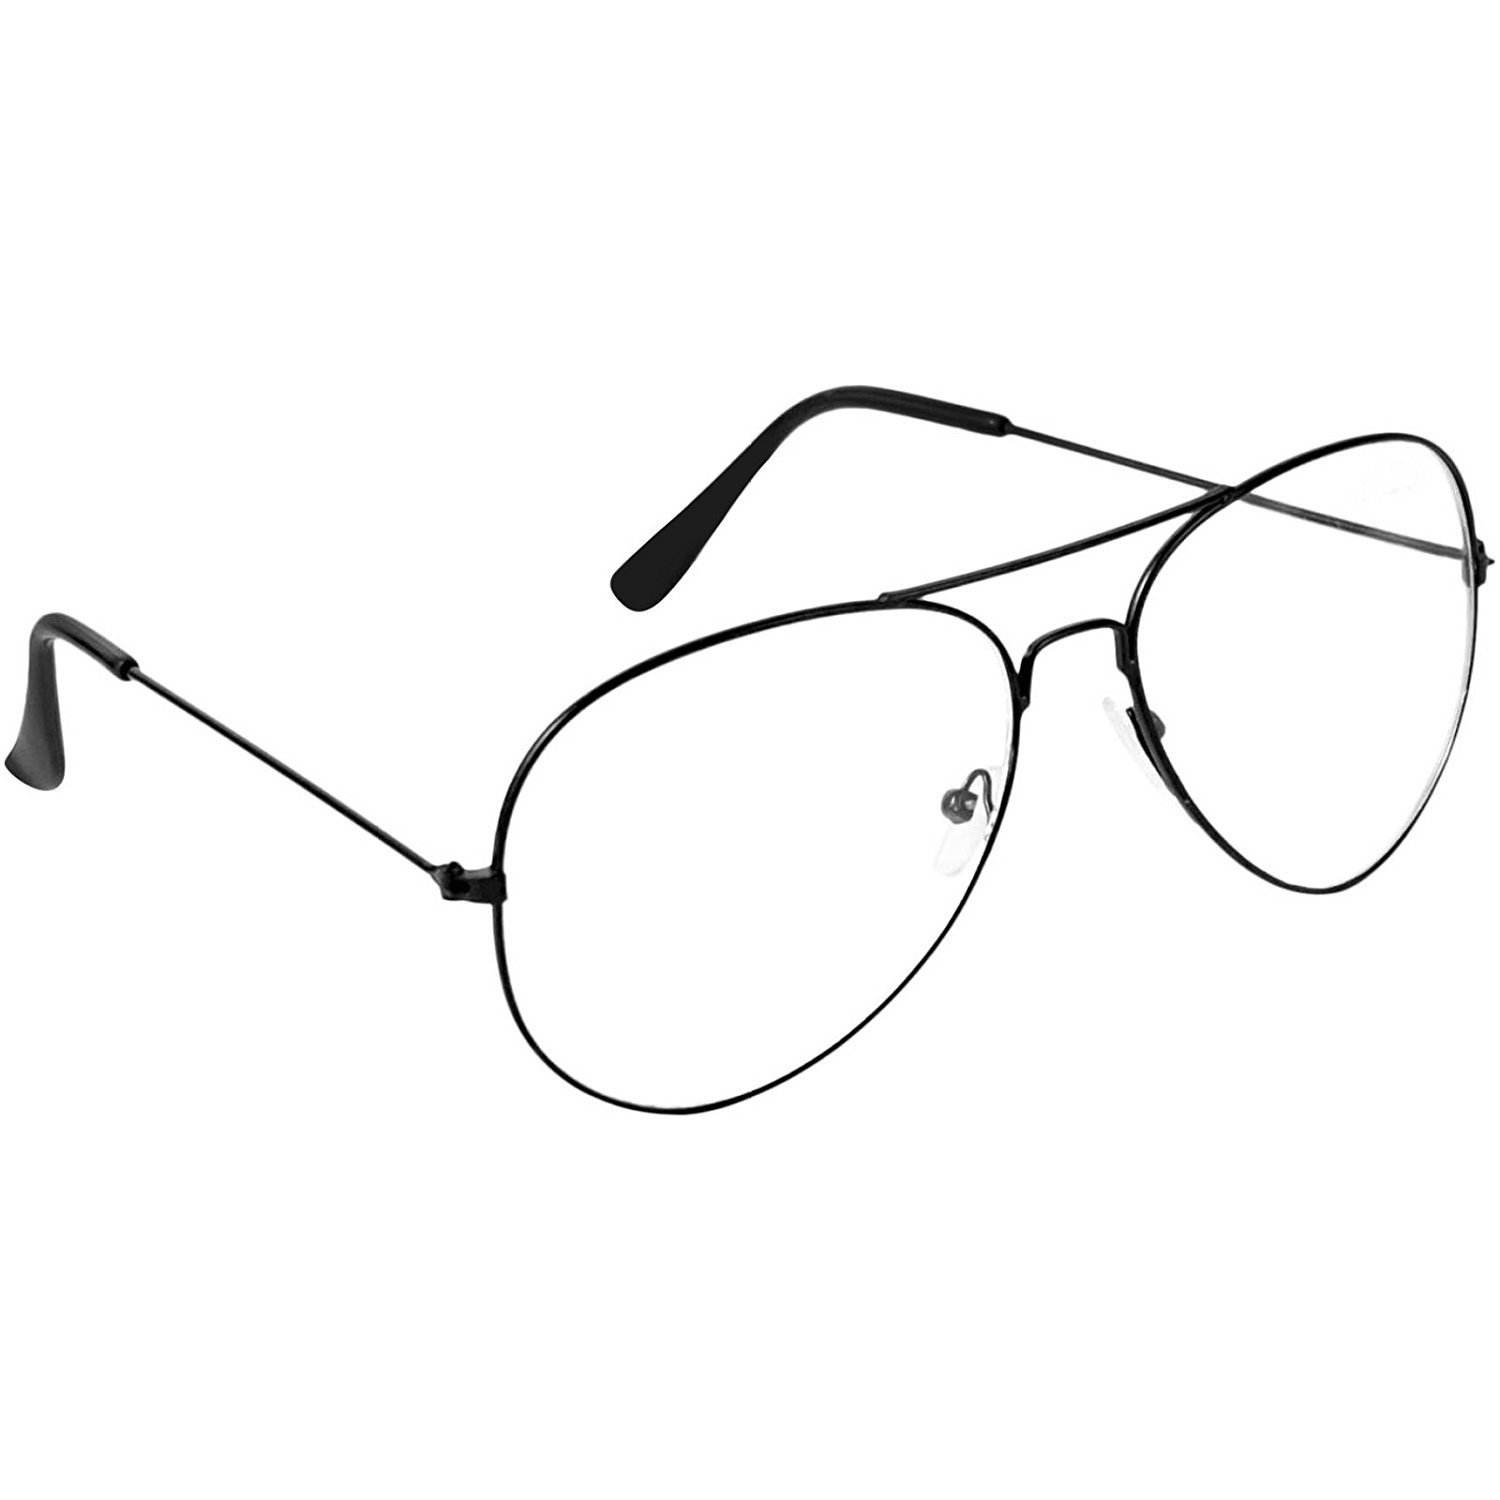 d2584d160f Dervin Clear Lens Black Frame Aviator Sunglasses for Men and Women  (Transparent Lens)  Amazon.in  Clothing   Accessories